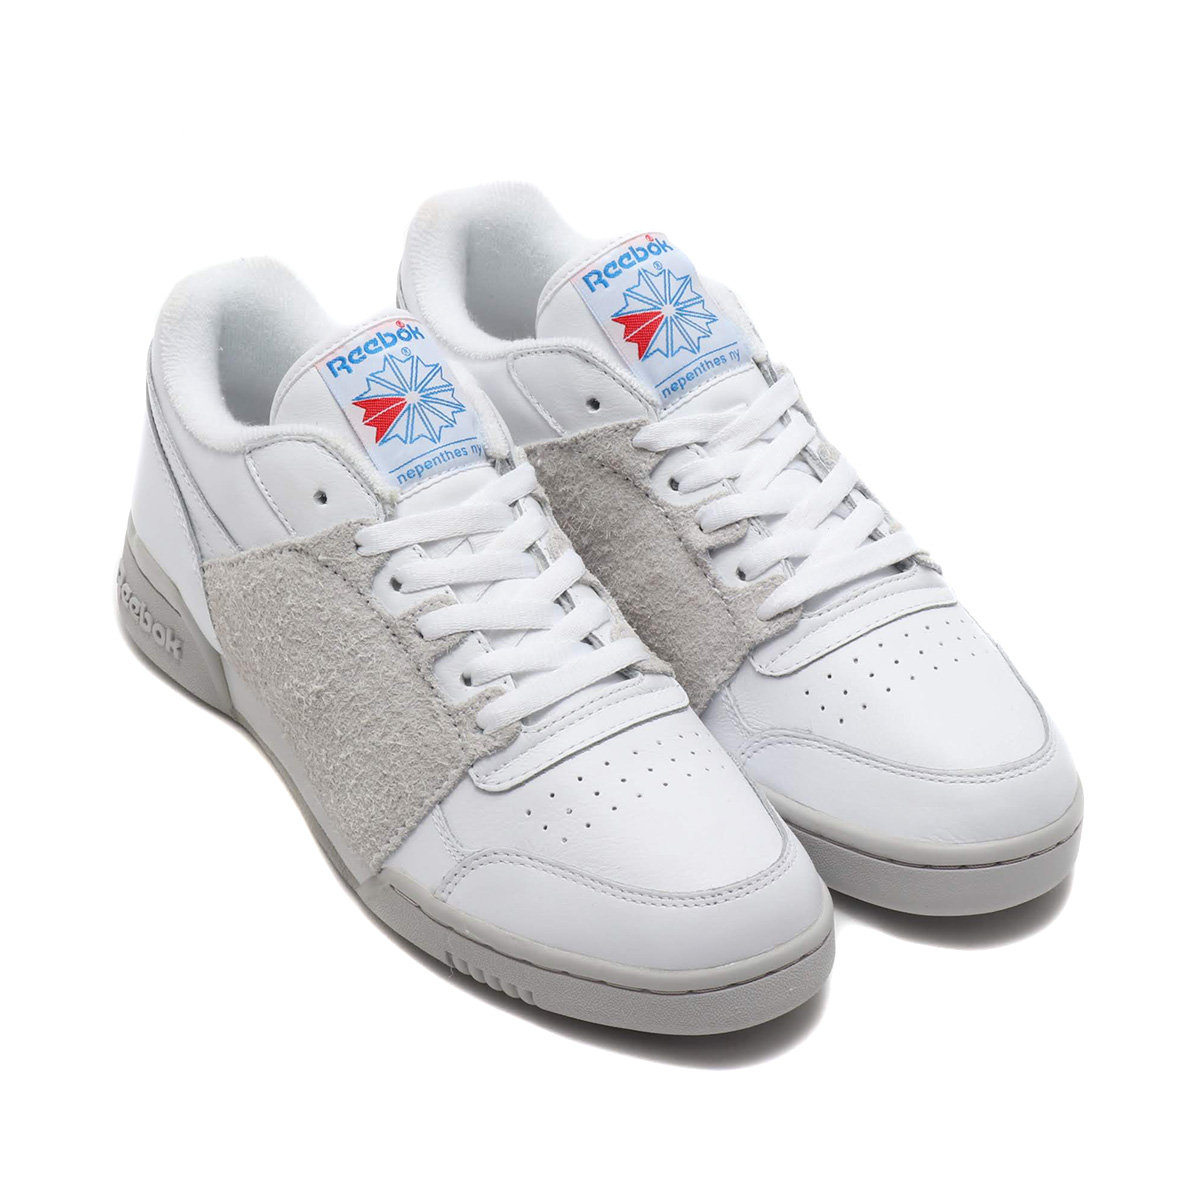 SALE お取り寄せ商品 Reebok 2019.SS WORKOUT PLUS 贈与 NEPENTHES トラスト リーボック ワークアウト スニーカー メンズ プラス 19SS-S at20-c BLUE ネペンテス WHT STEEL